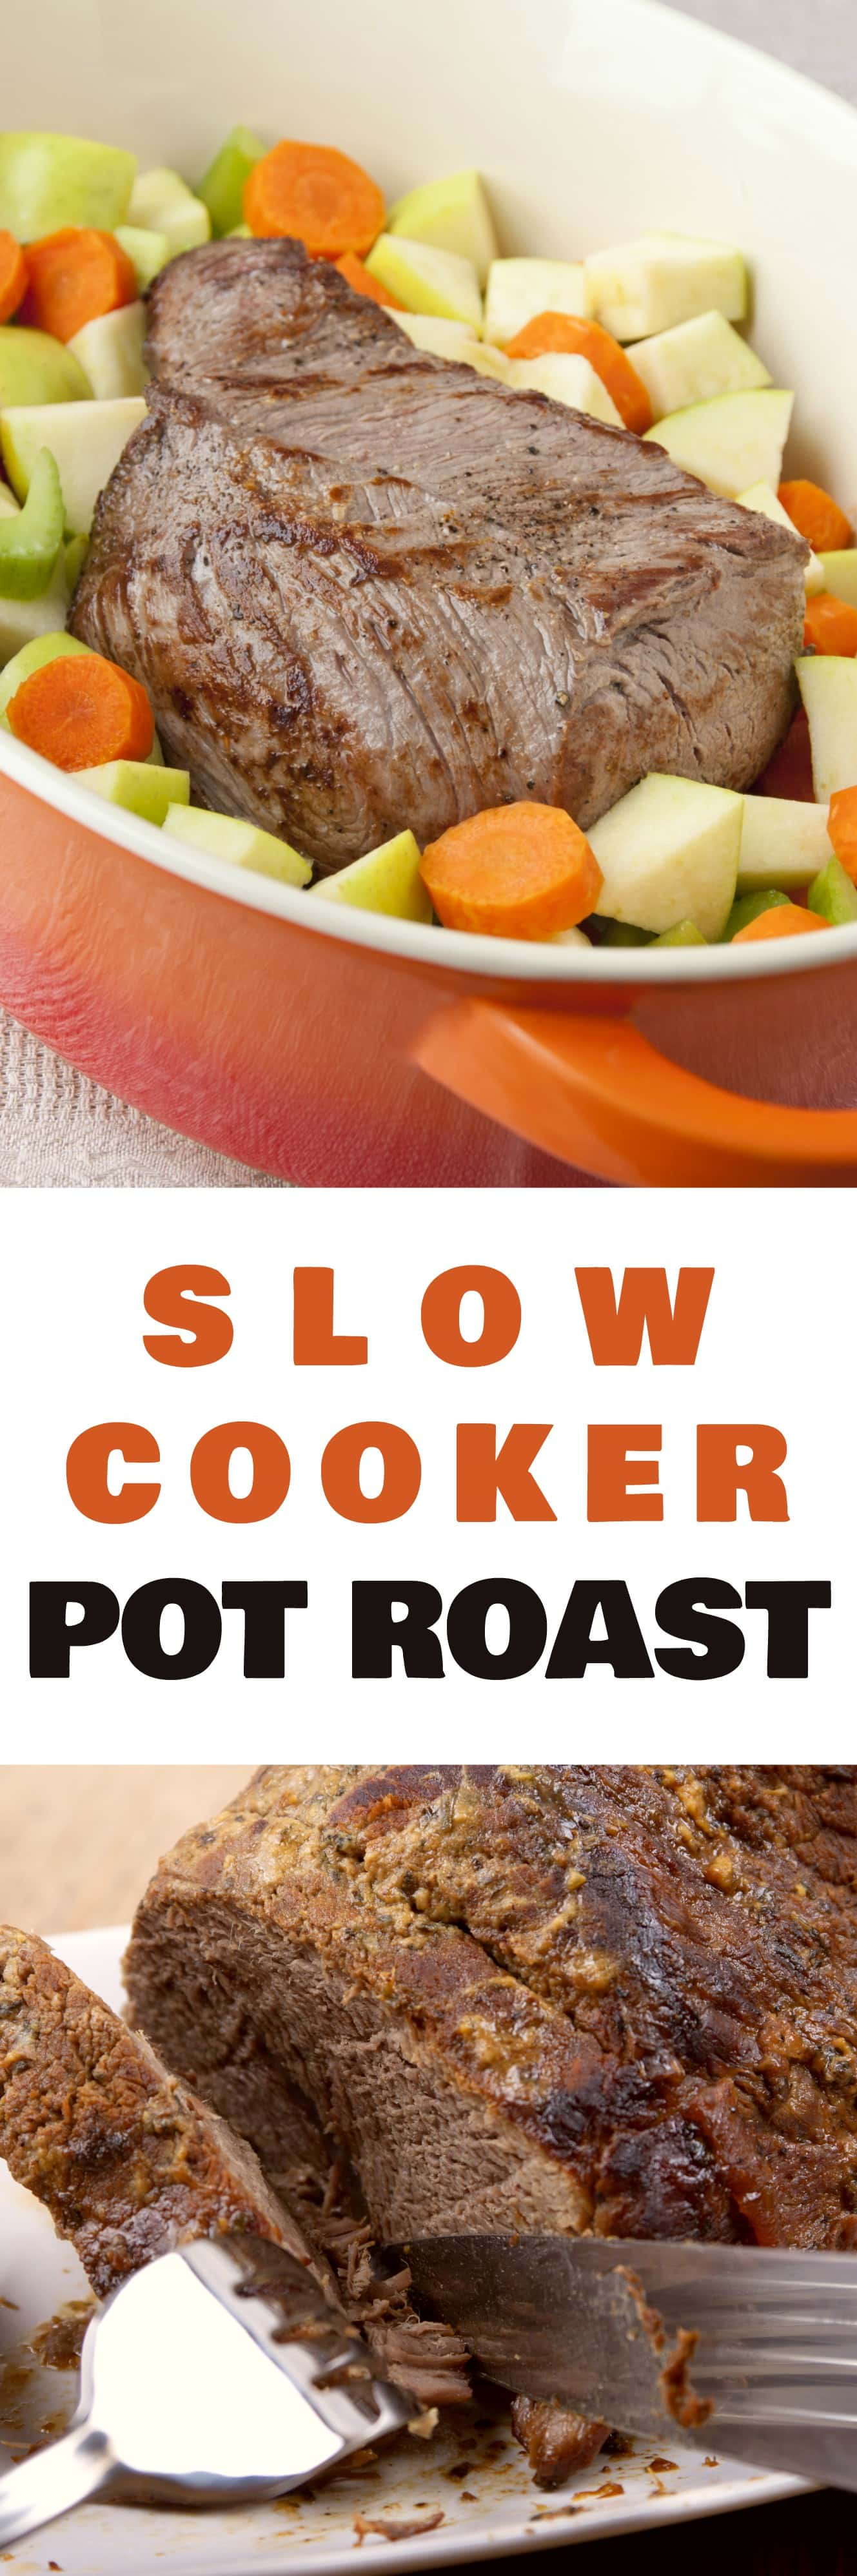 MELT in your MOUTH Slow Cooker Pot Roast!  This Crockpot recipe is the best and is so easy to make!  Add your roast, cream of mushroom soup, beef soup mix and vegetables to the slow cooker and dinner will be ready in 7 hours! This beef roast is my husband's favorite meal, and our family loves the leftovers!